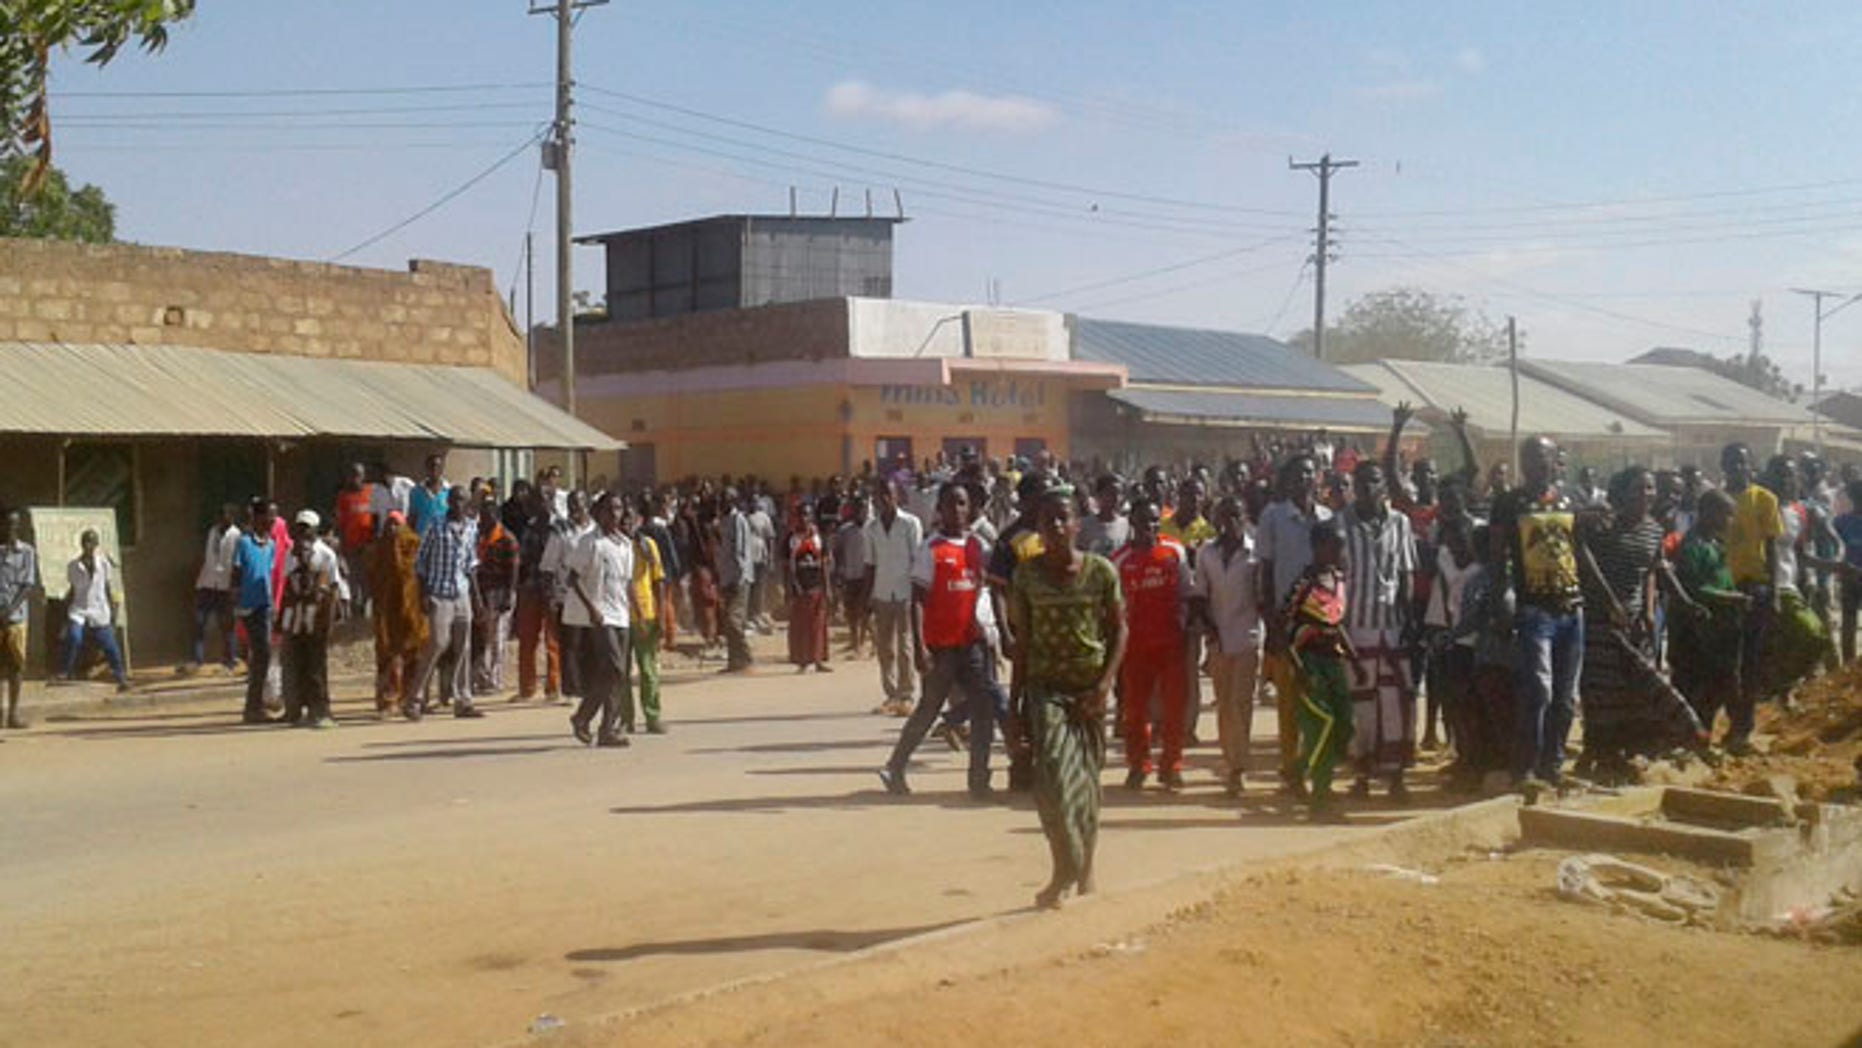 Oct. 25: Residents gather near the scene of an attack in the town of Mandera, Kenya, near the border with Somalia,